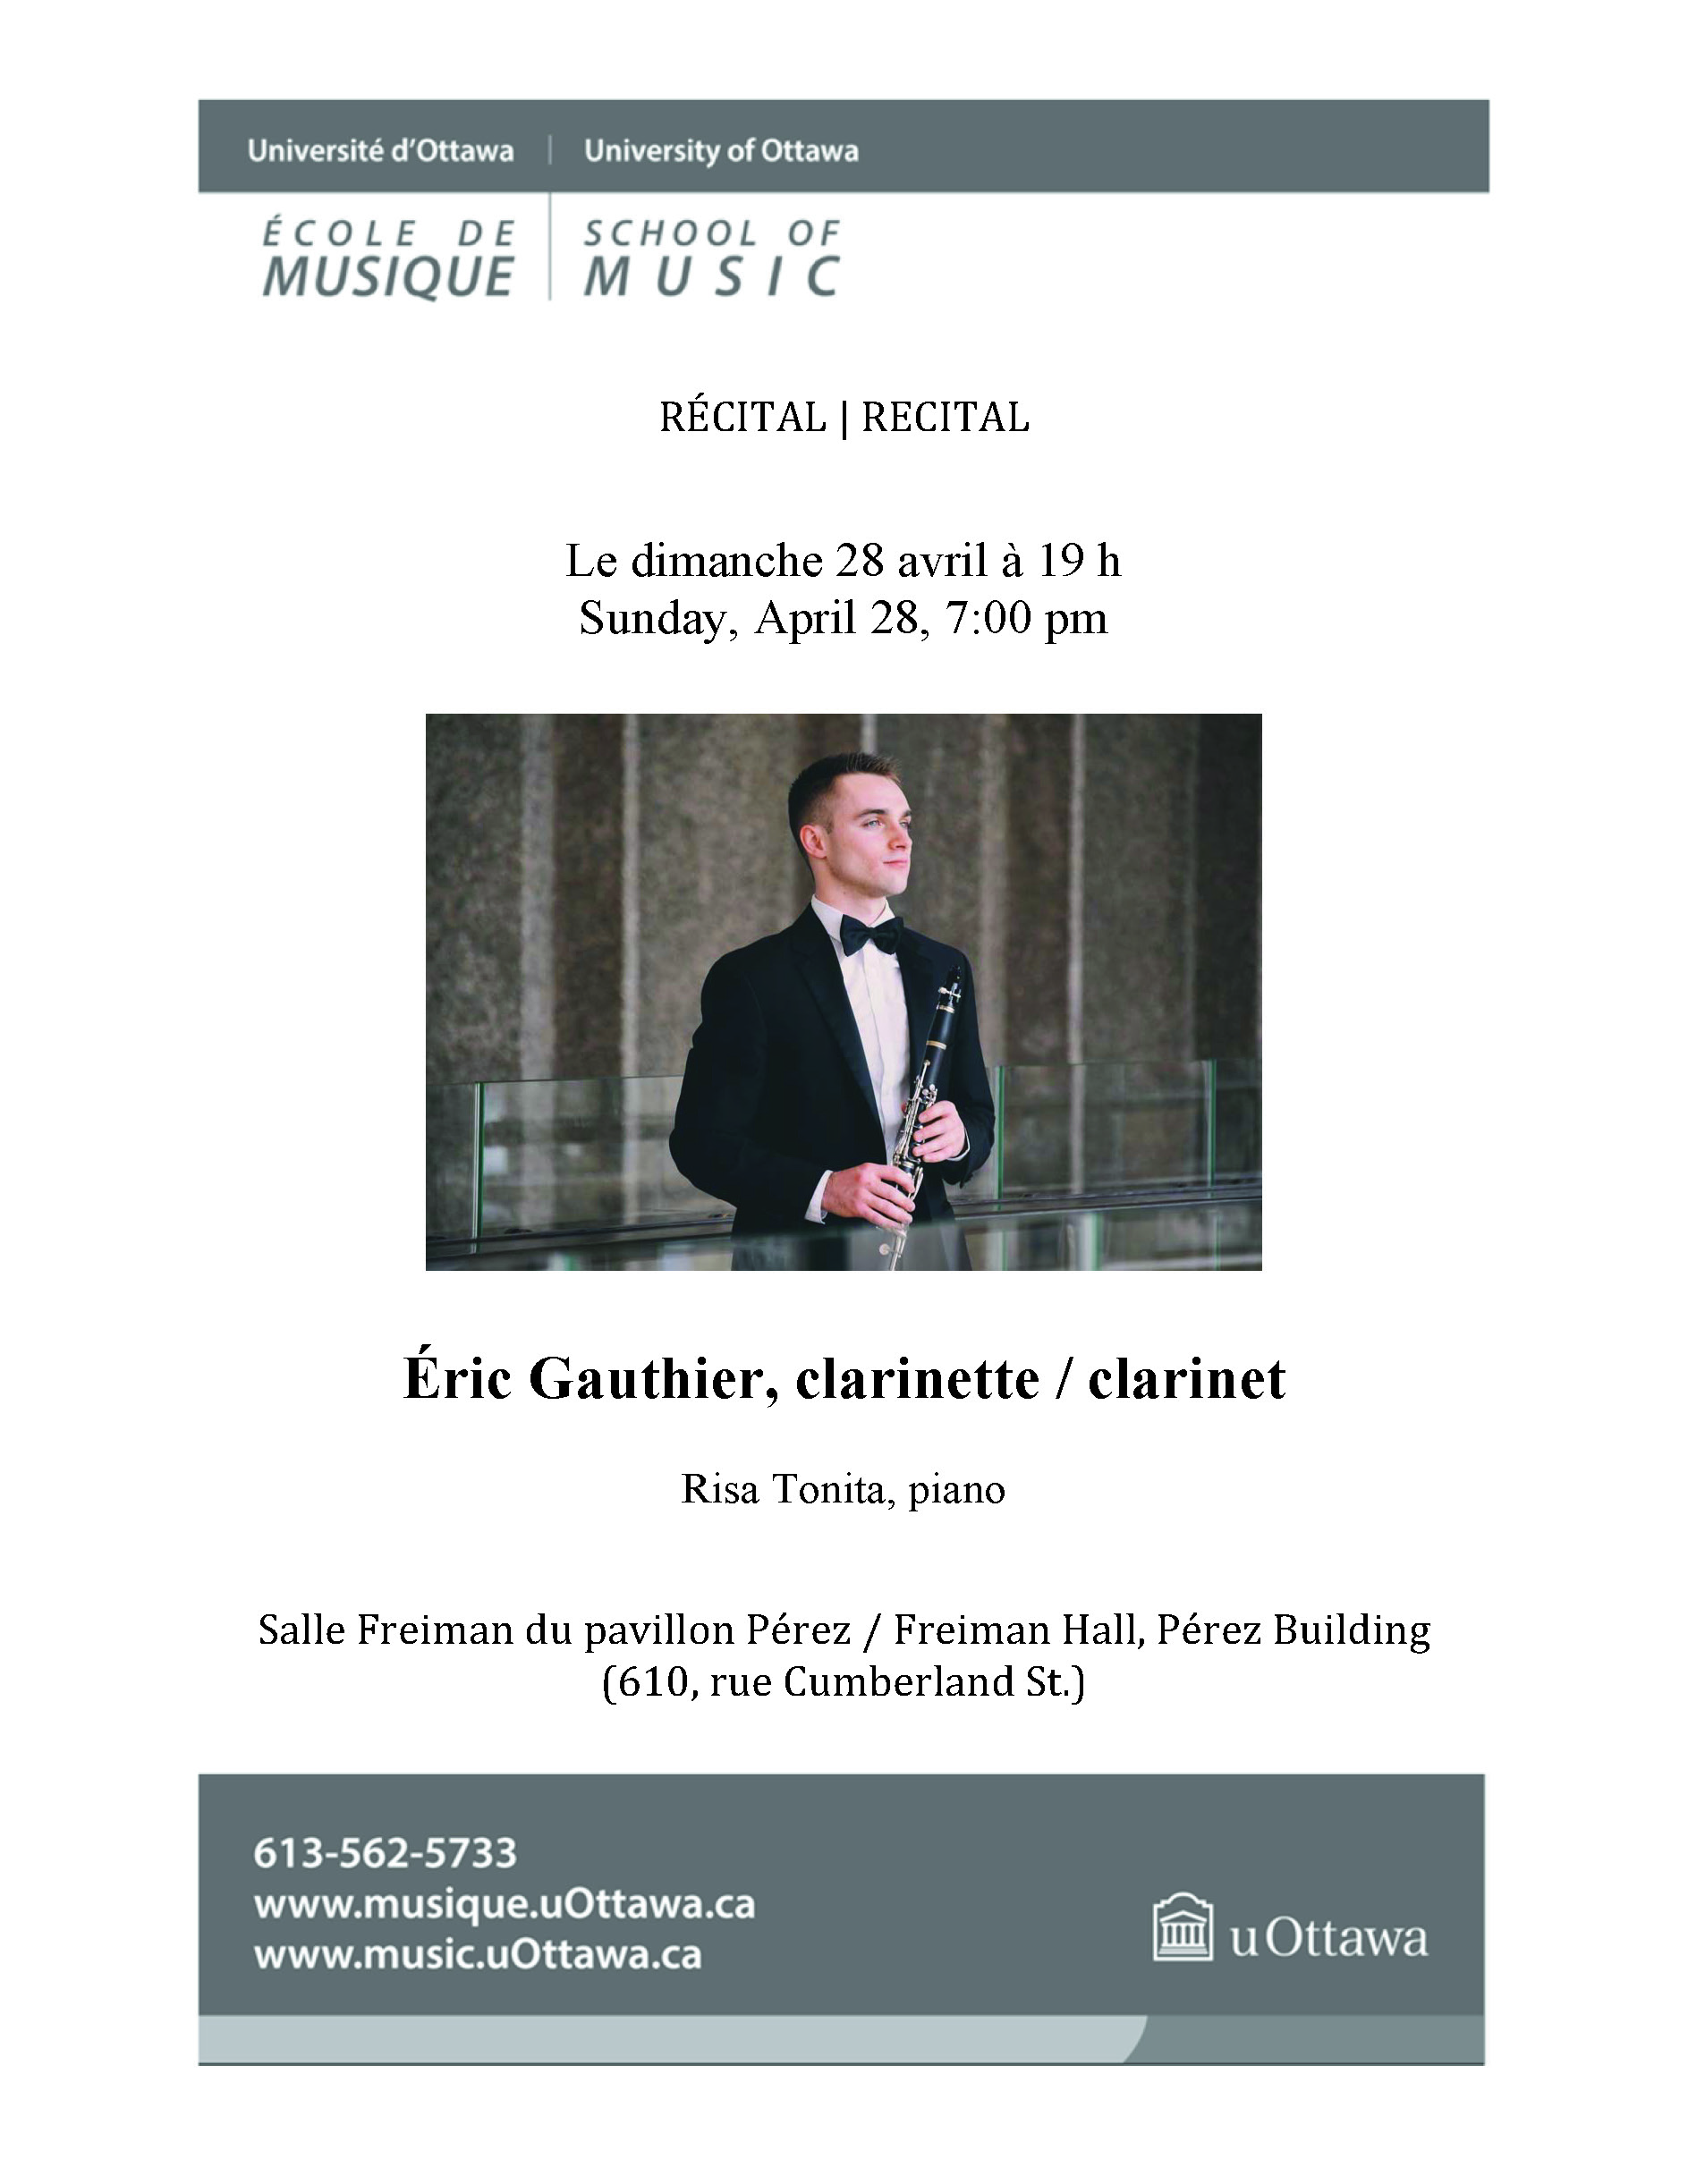 Recital program for Eric Gauthier, page 1